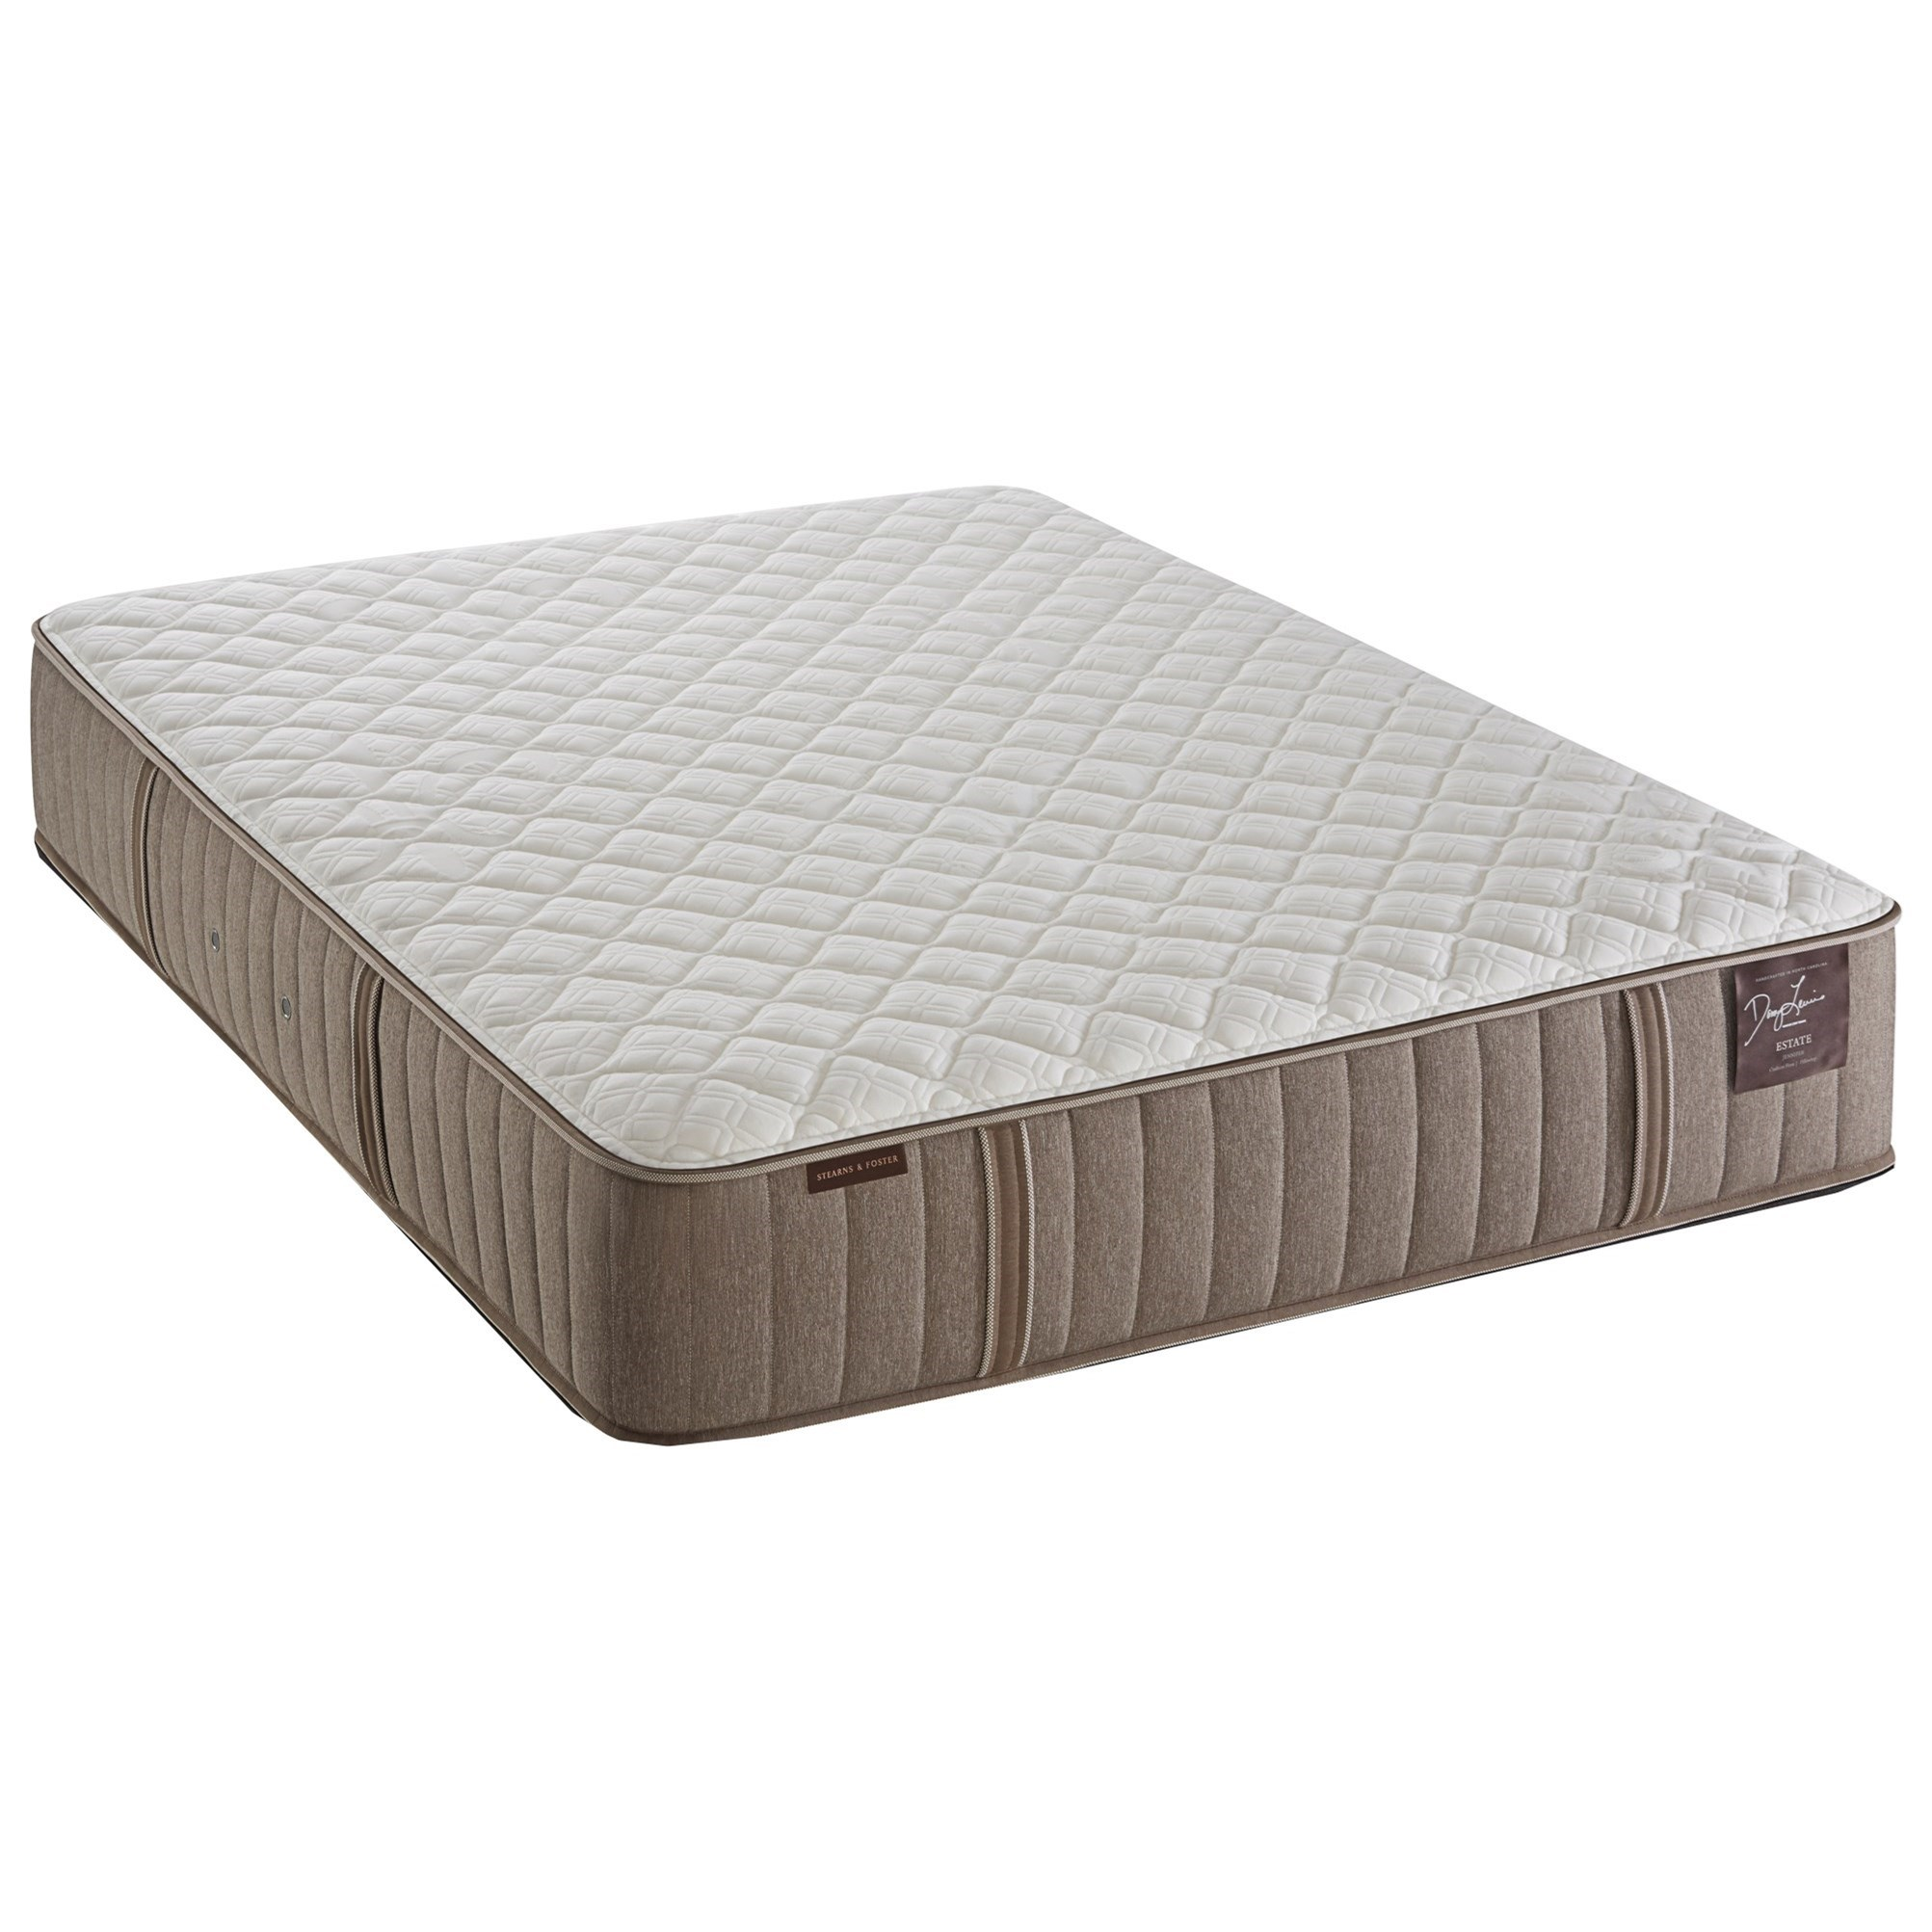 Stearns & Foster Scarborough Full Ultra Firm Mattress - Item Number: UFirm-F